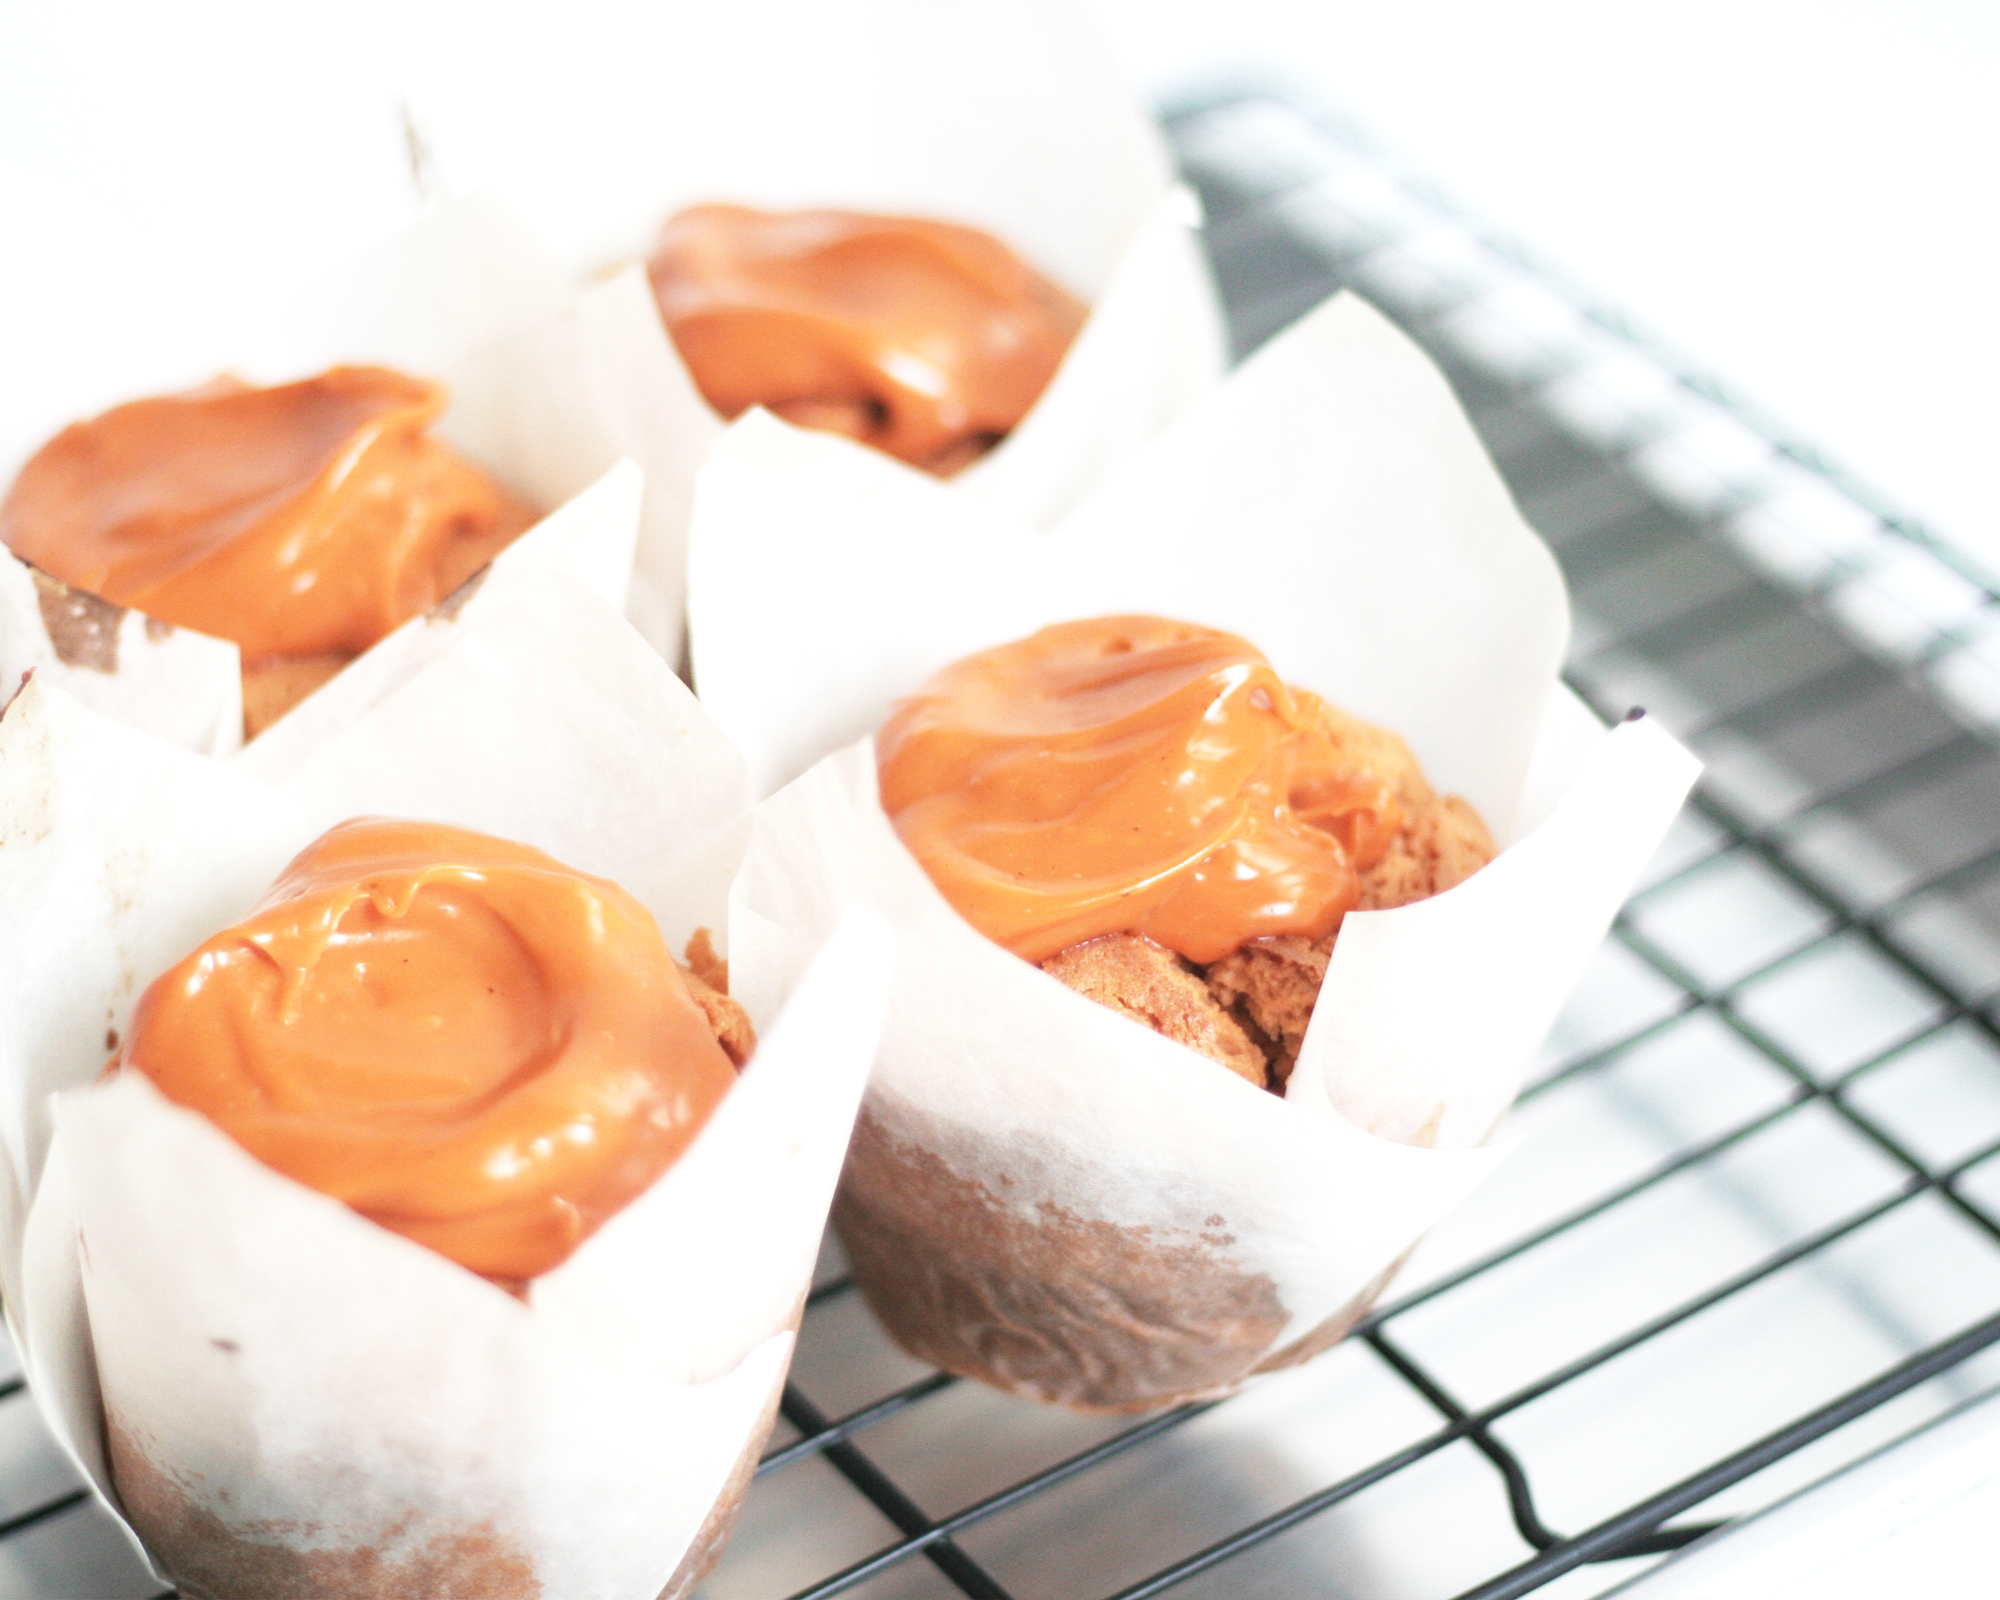 thai milk tea muffins - Thai milk tea muffinsThai milk tea fudge fillingThai milk tea frosting9pcs 400hkd